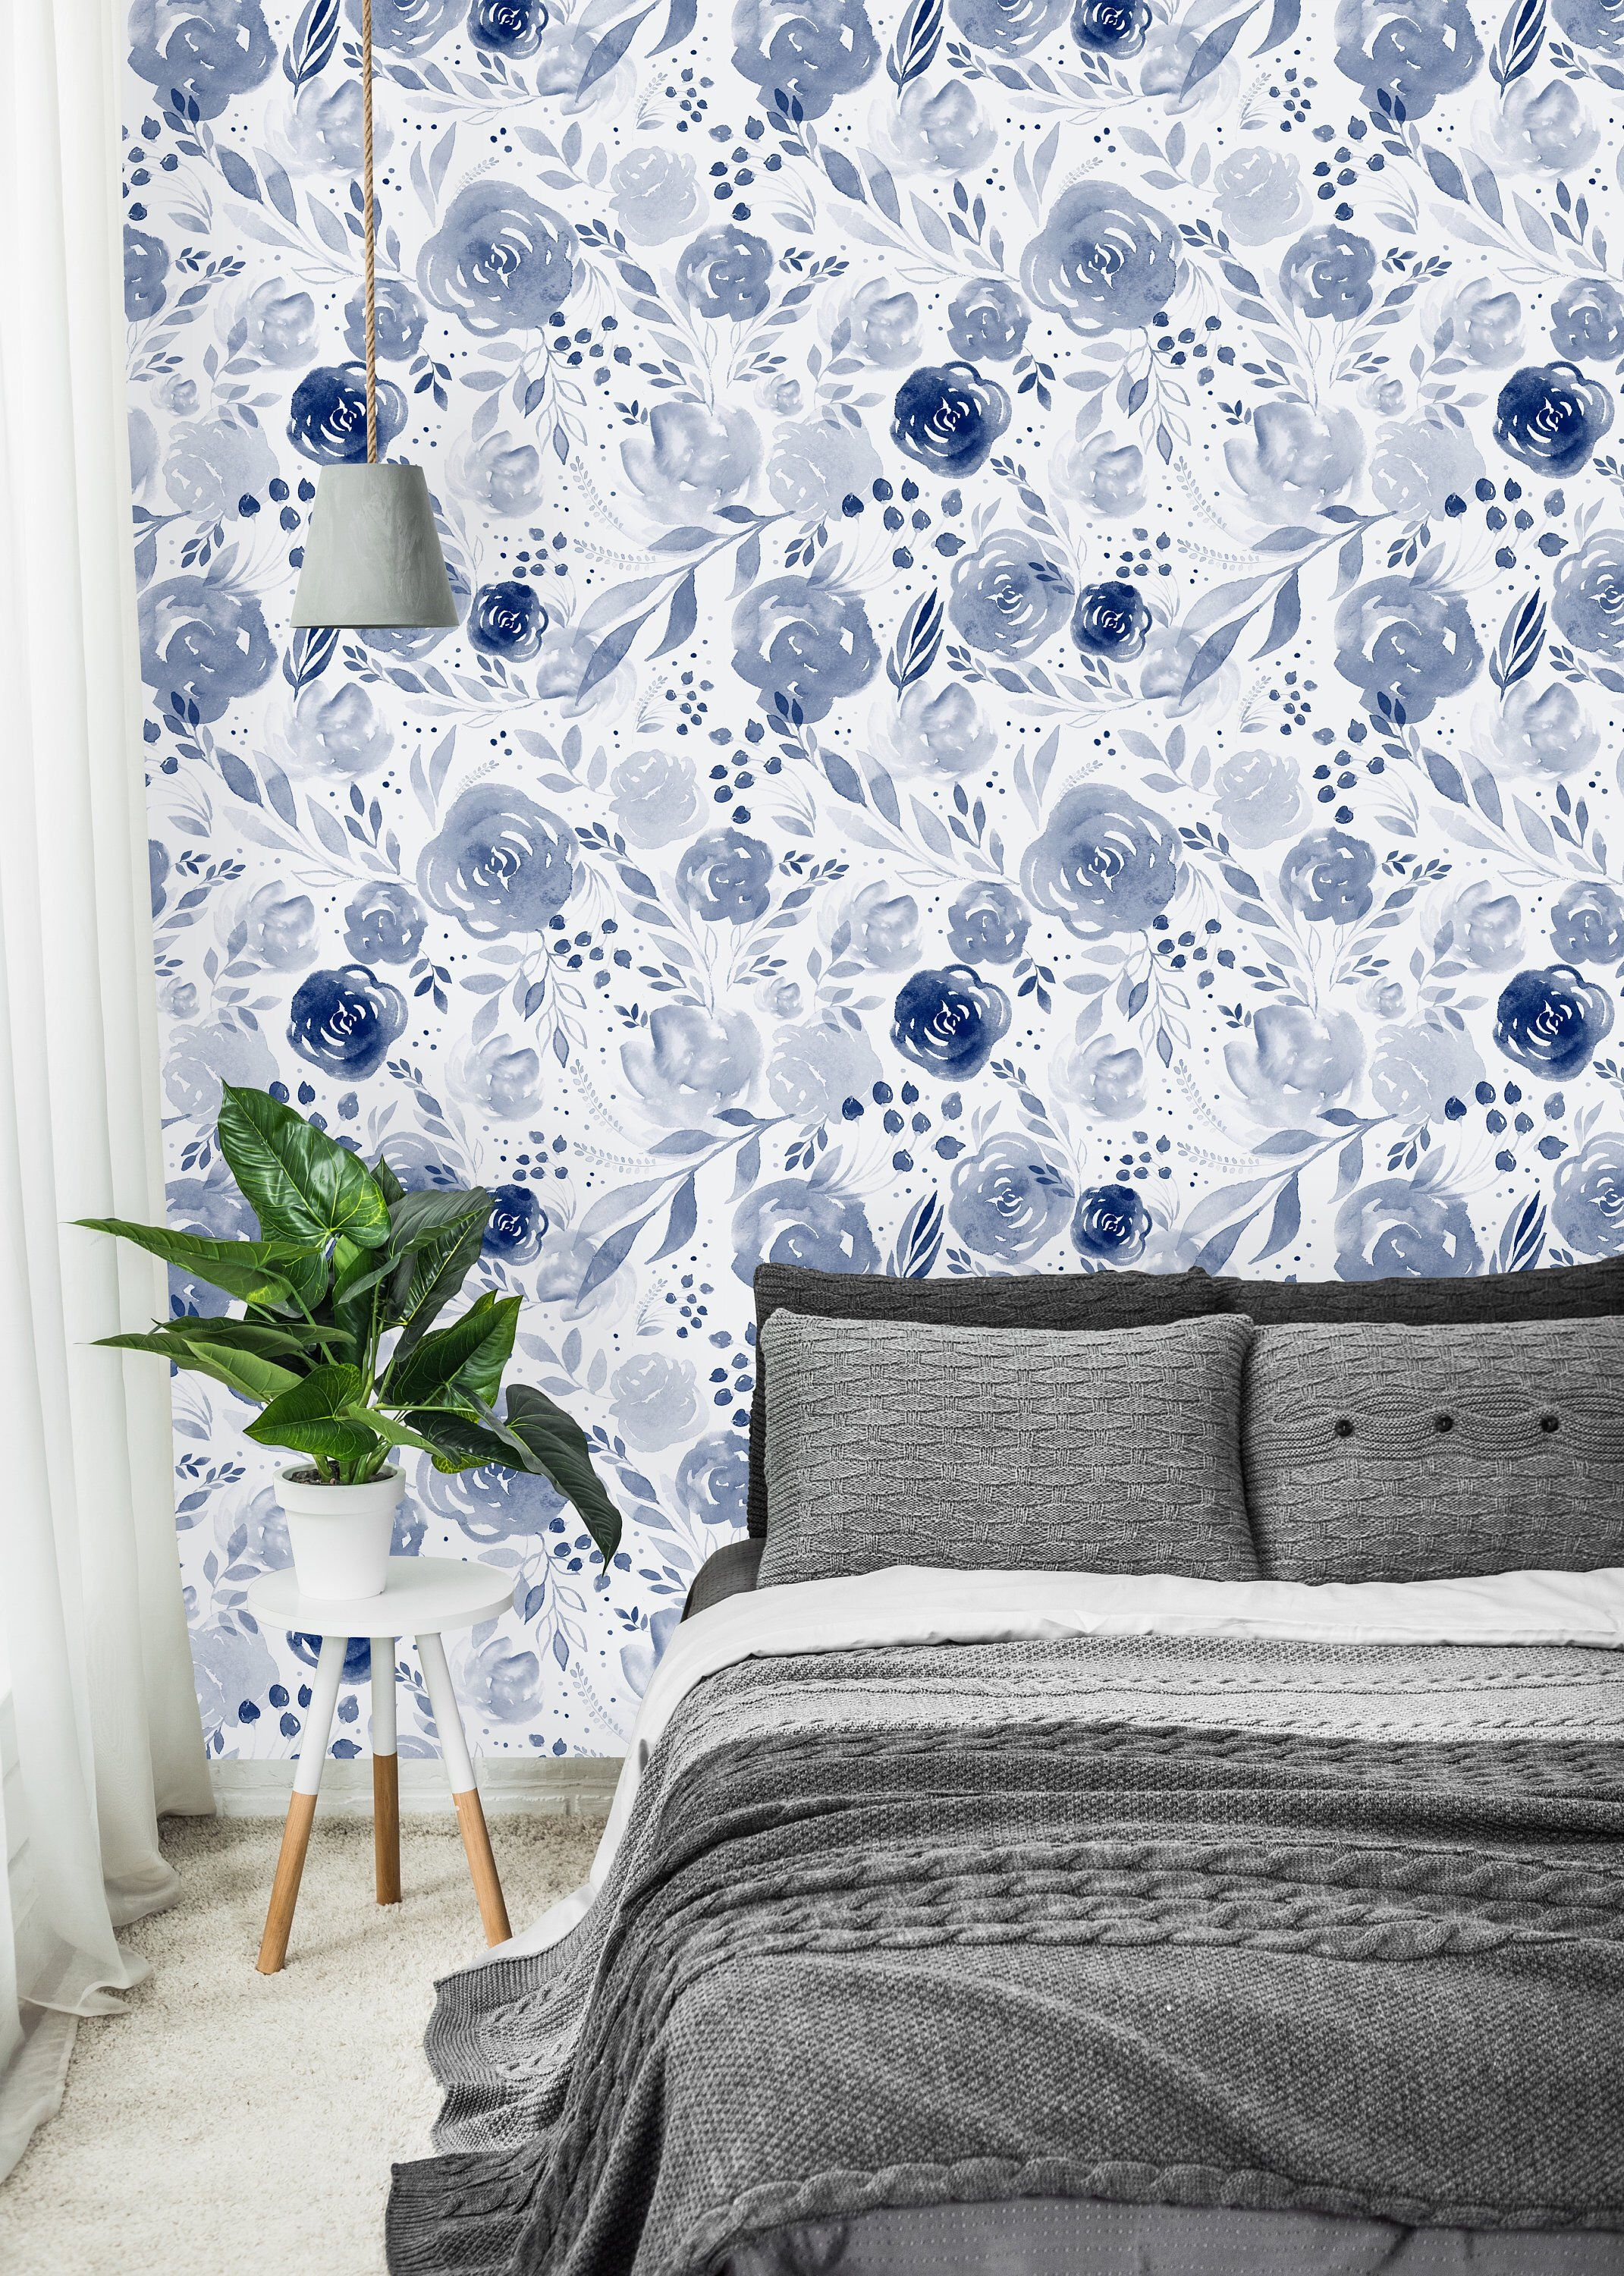 Blue Watercolor Flowers Background Removable Wallpaper Peel And